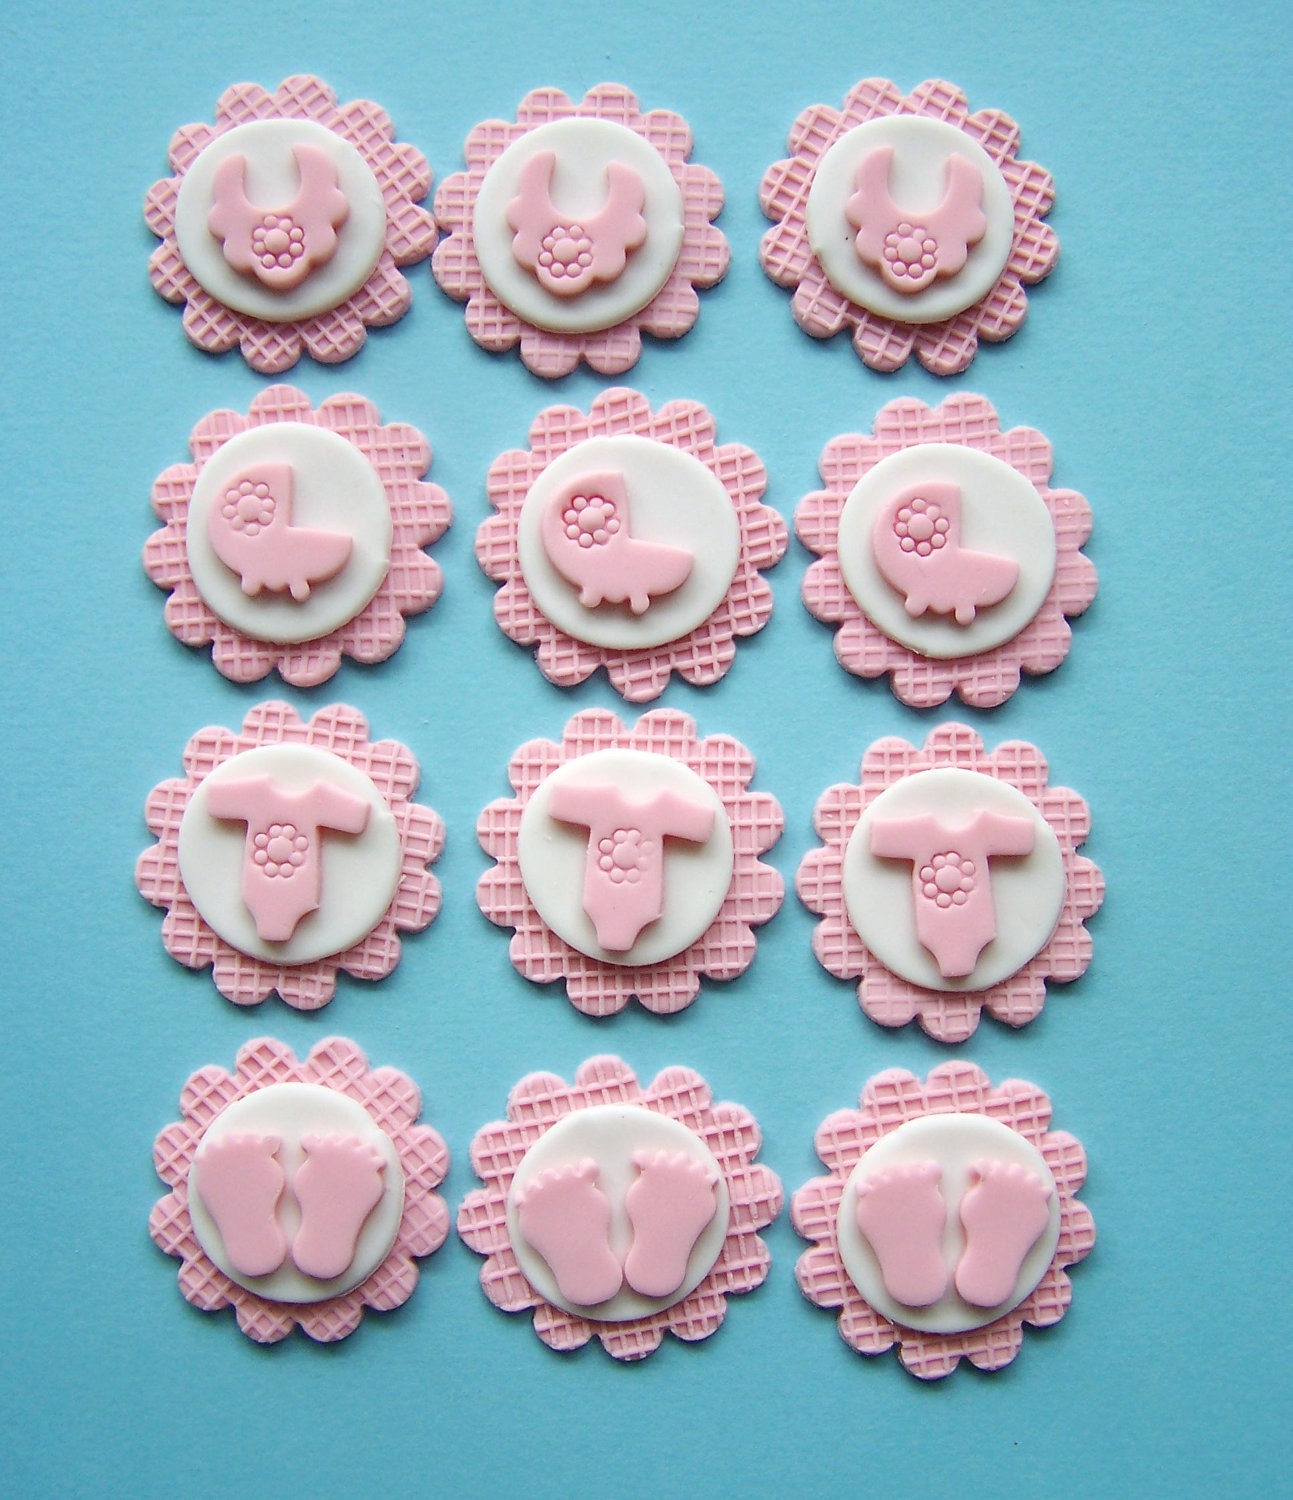 Cake Toppers Baby Shower Etsy : Baby Shower Set Edible Cupcake Topper Fondant by ...